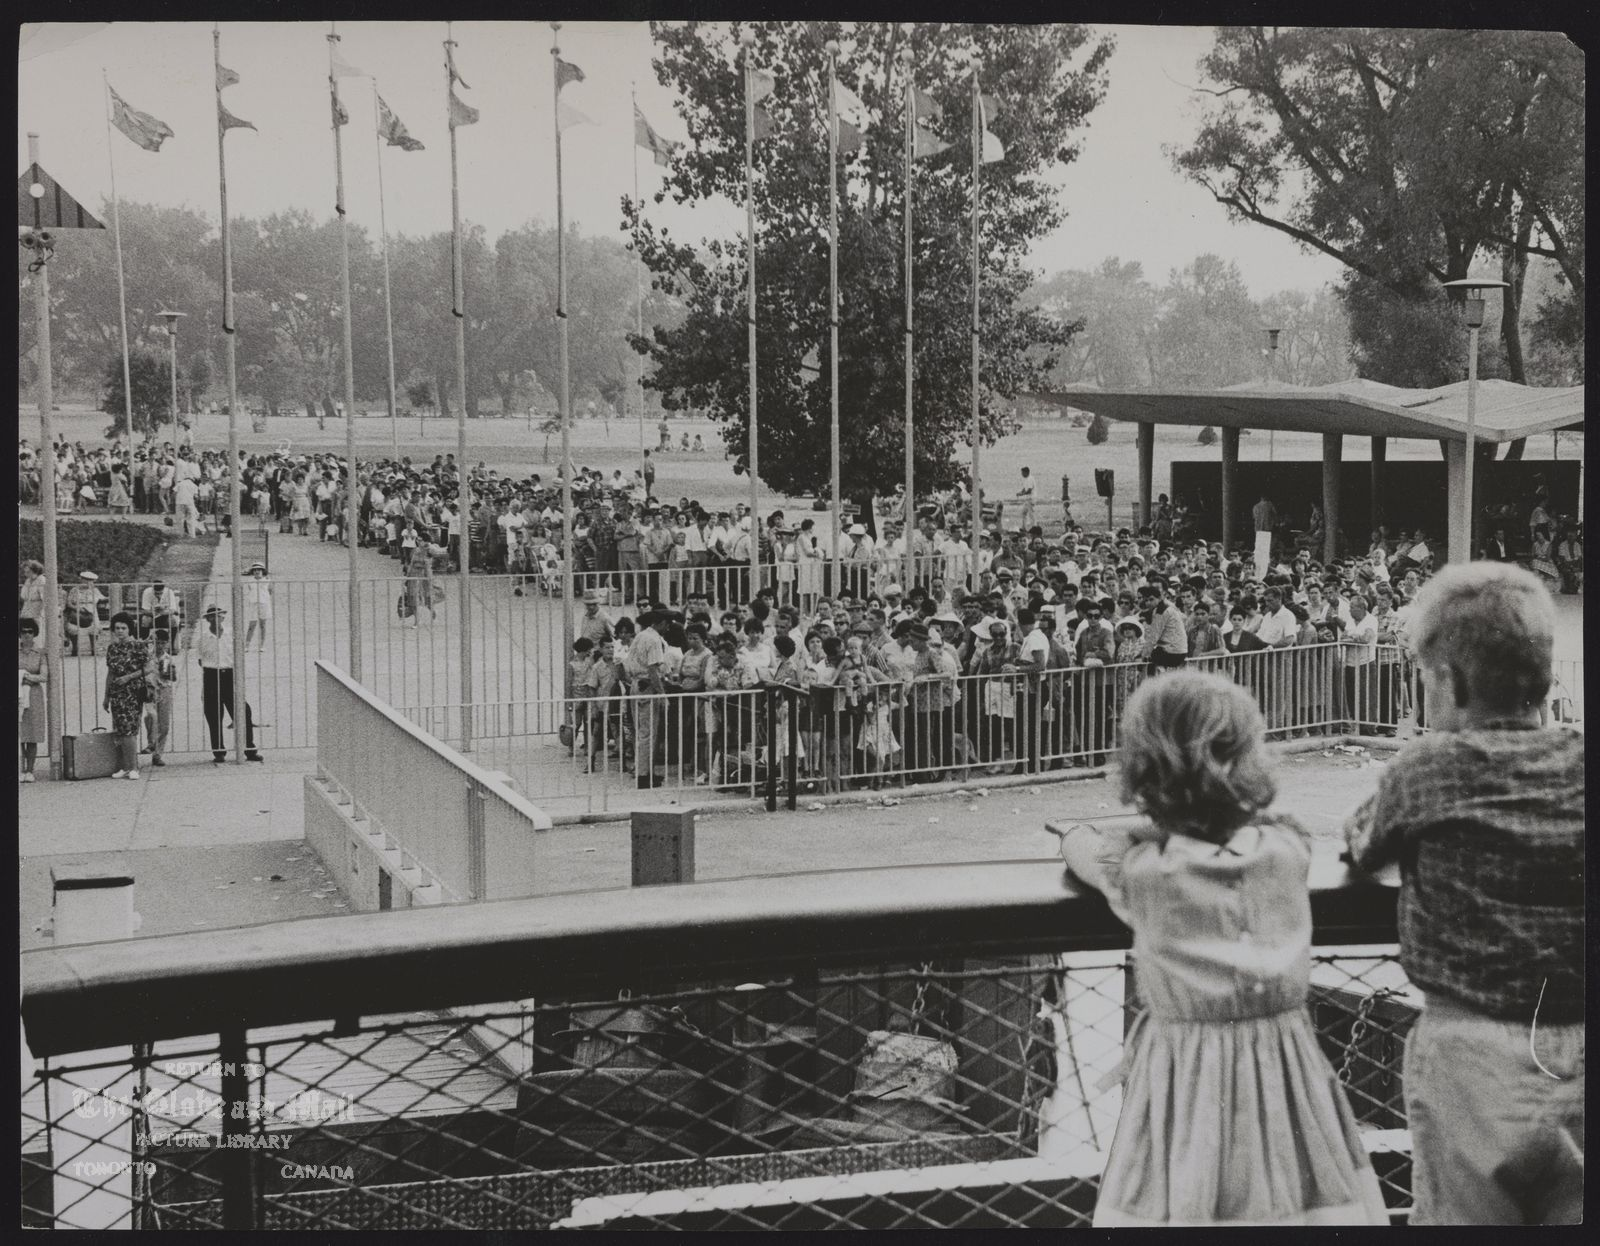 CENTRE ISLAND Multiple lineups for cooling voyages home across Toronto Bay extended almost as far as the lakefront beaches on Centre Island from the passenger loading areas at docks, [July 1, 1963]. From rail of ferry, girl and boy who were early in queues during evening look back at thousands waiting in heat for next boat.